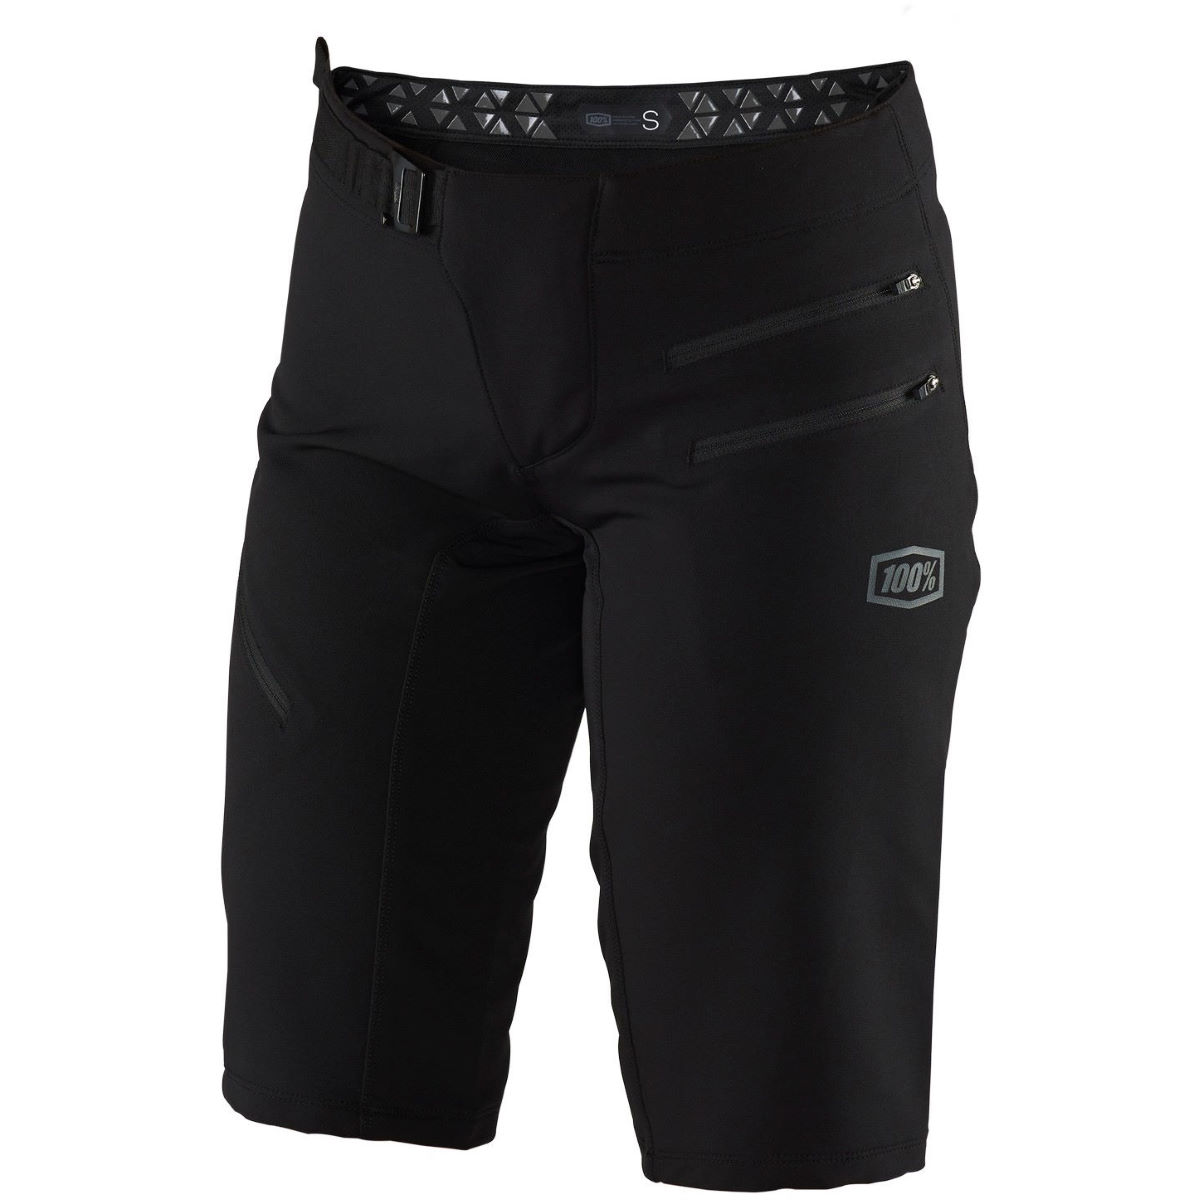 100% Womens Airmatic Shorts - L Black  Baggy Shorts